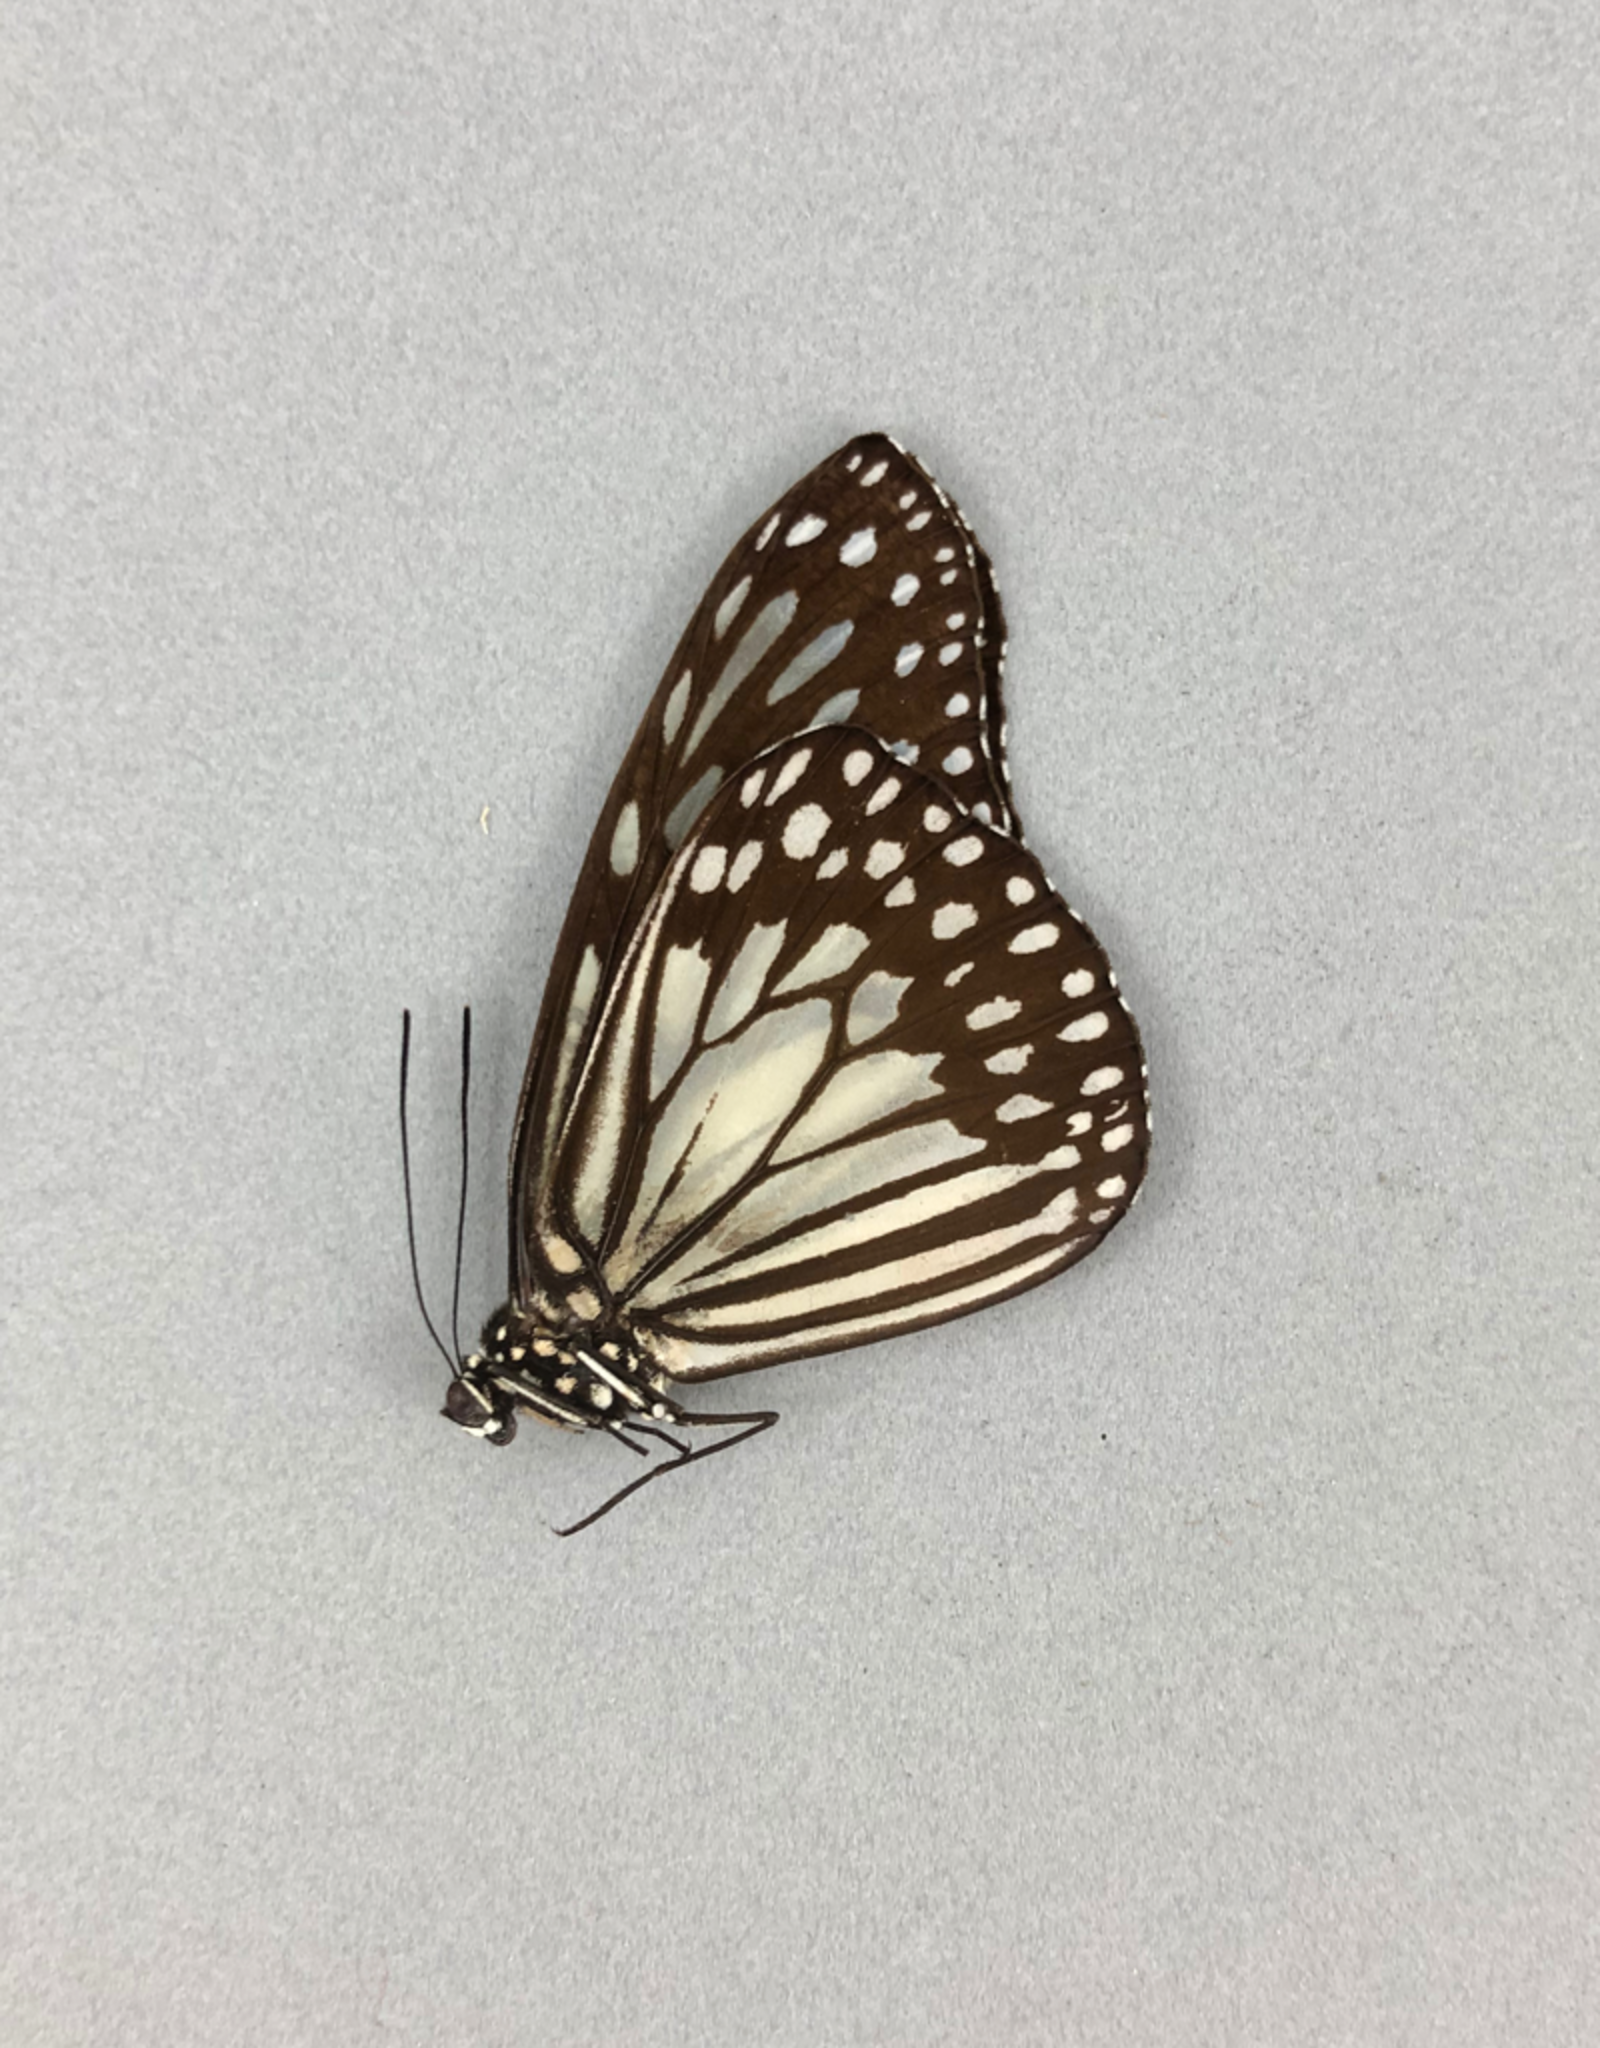 Ideopsis juventa curtisi M A1 Philippines